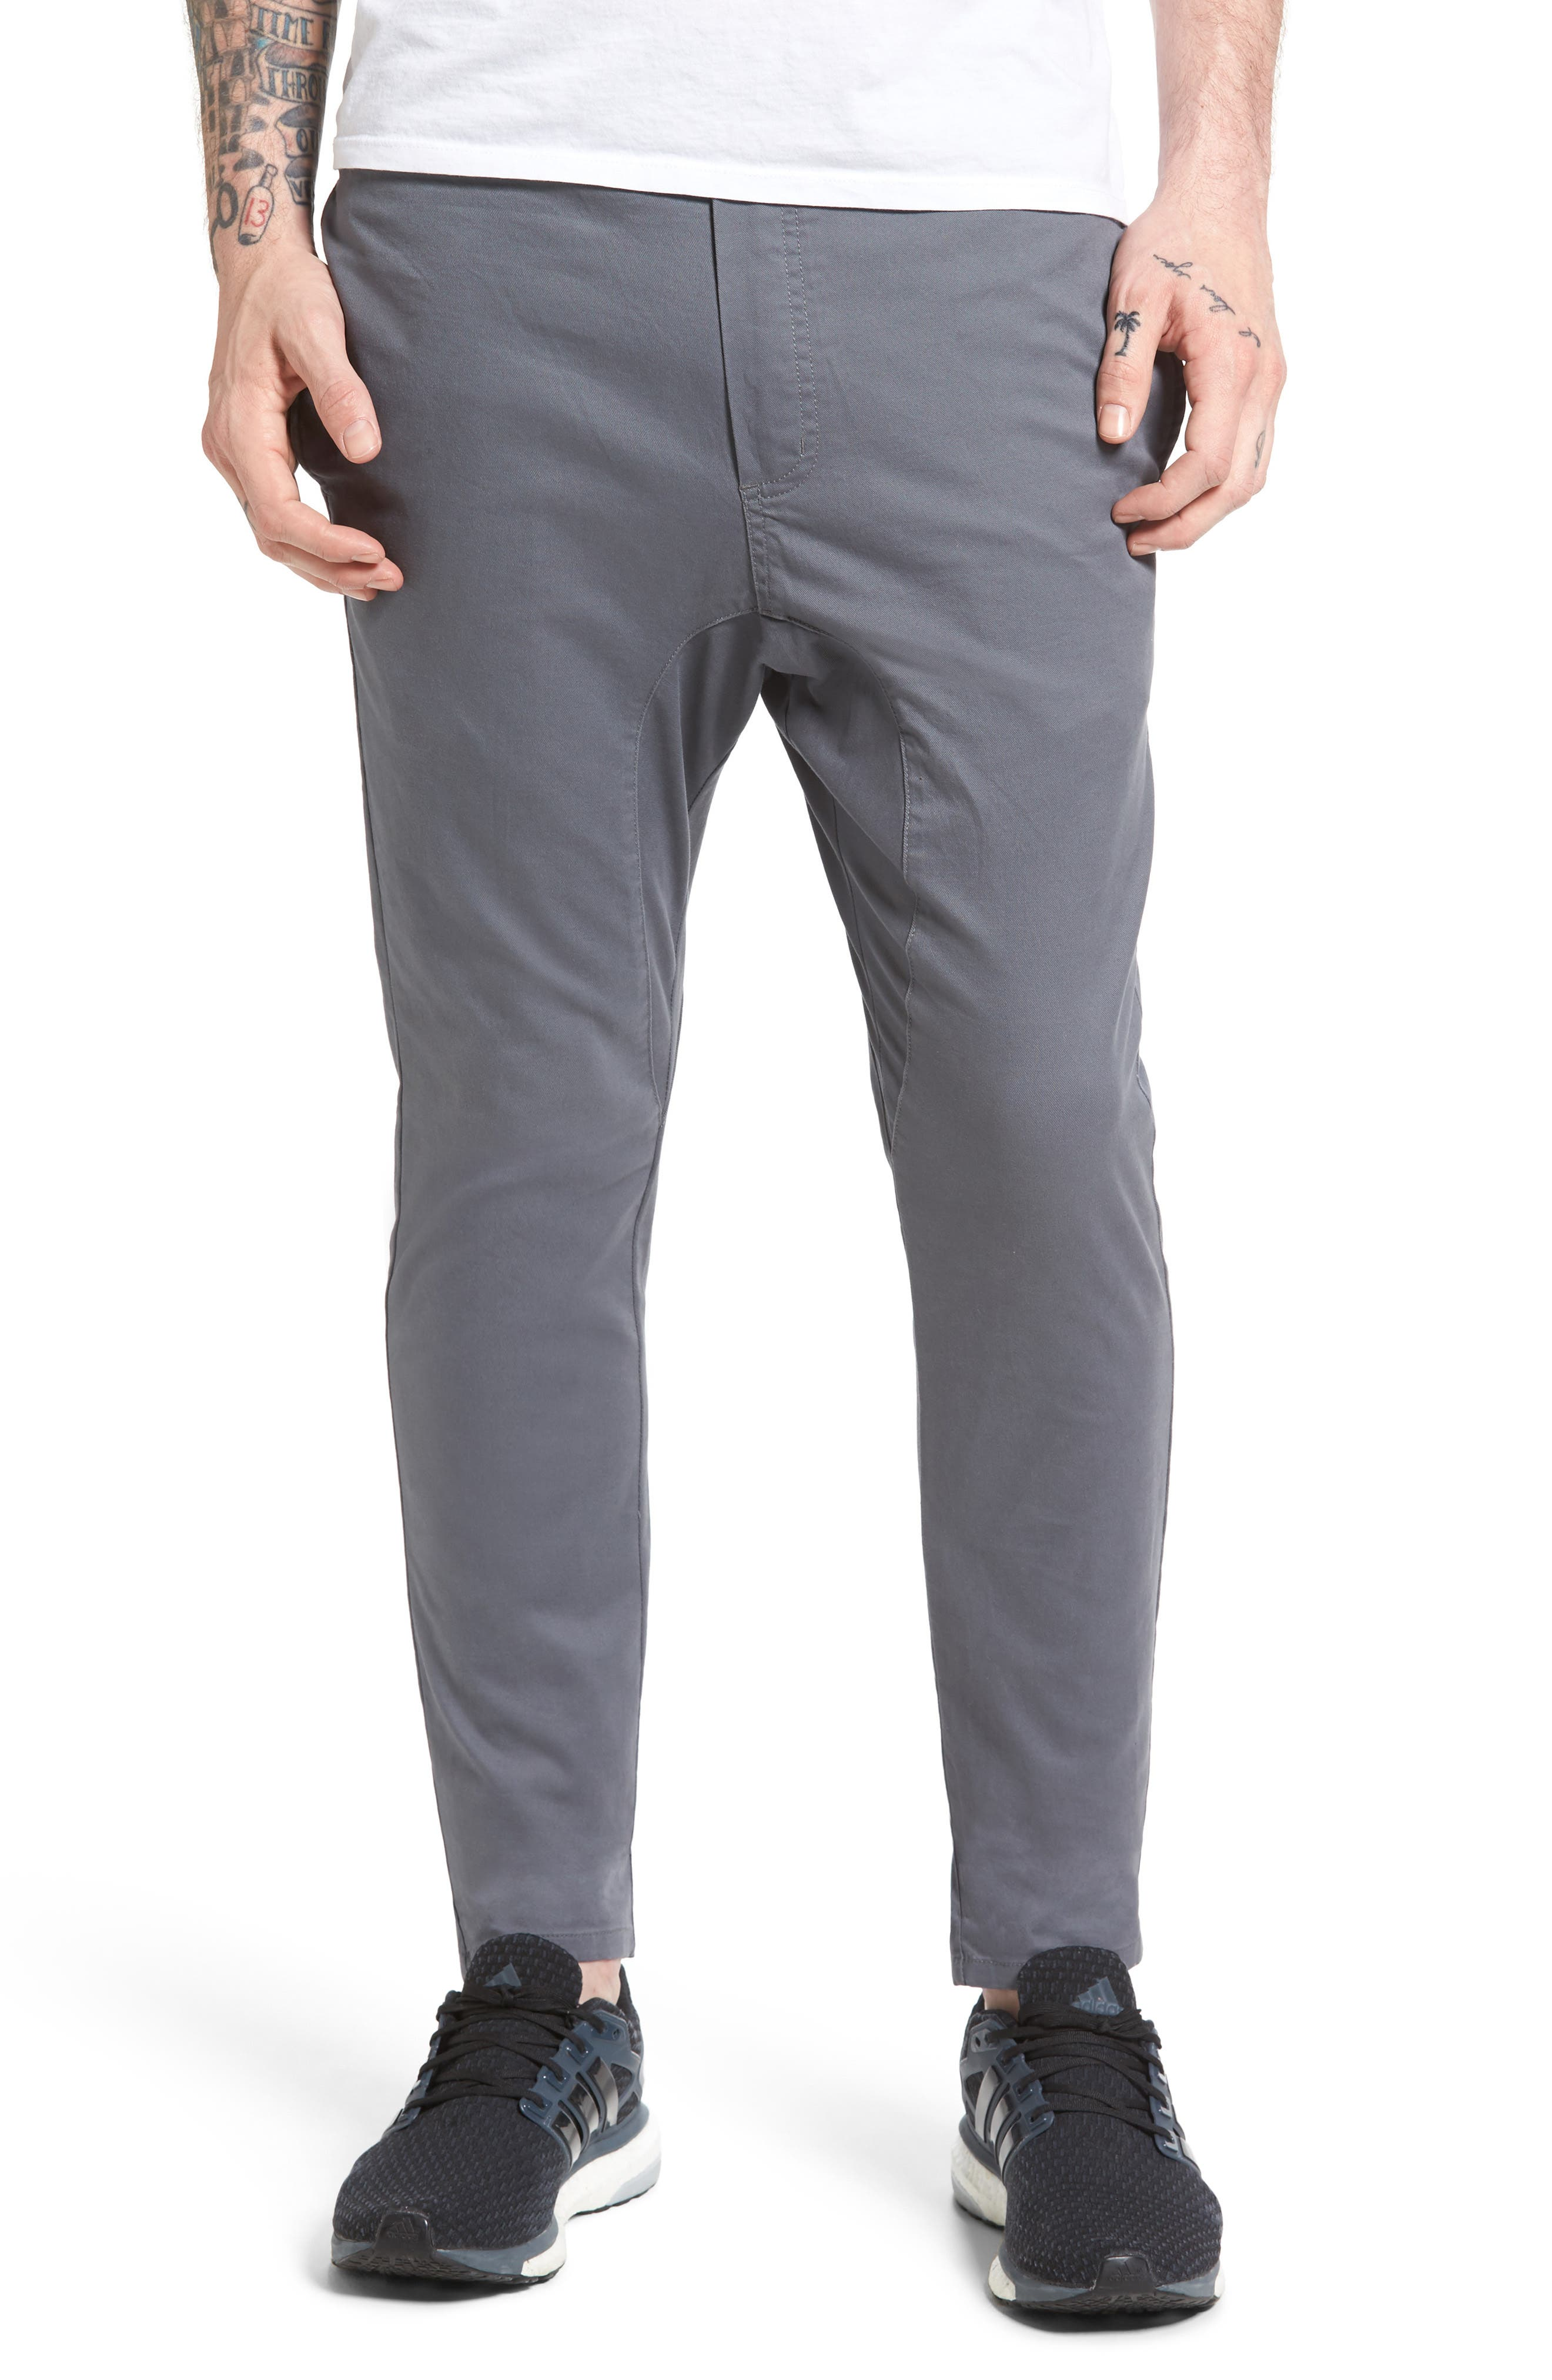 Alternate Image 1 Selected - ZANEROBE Salerno Stretch Woven Jogger Pants